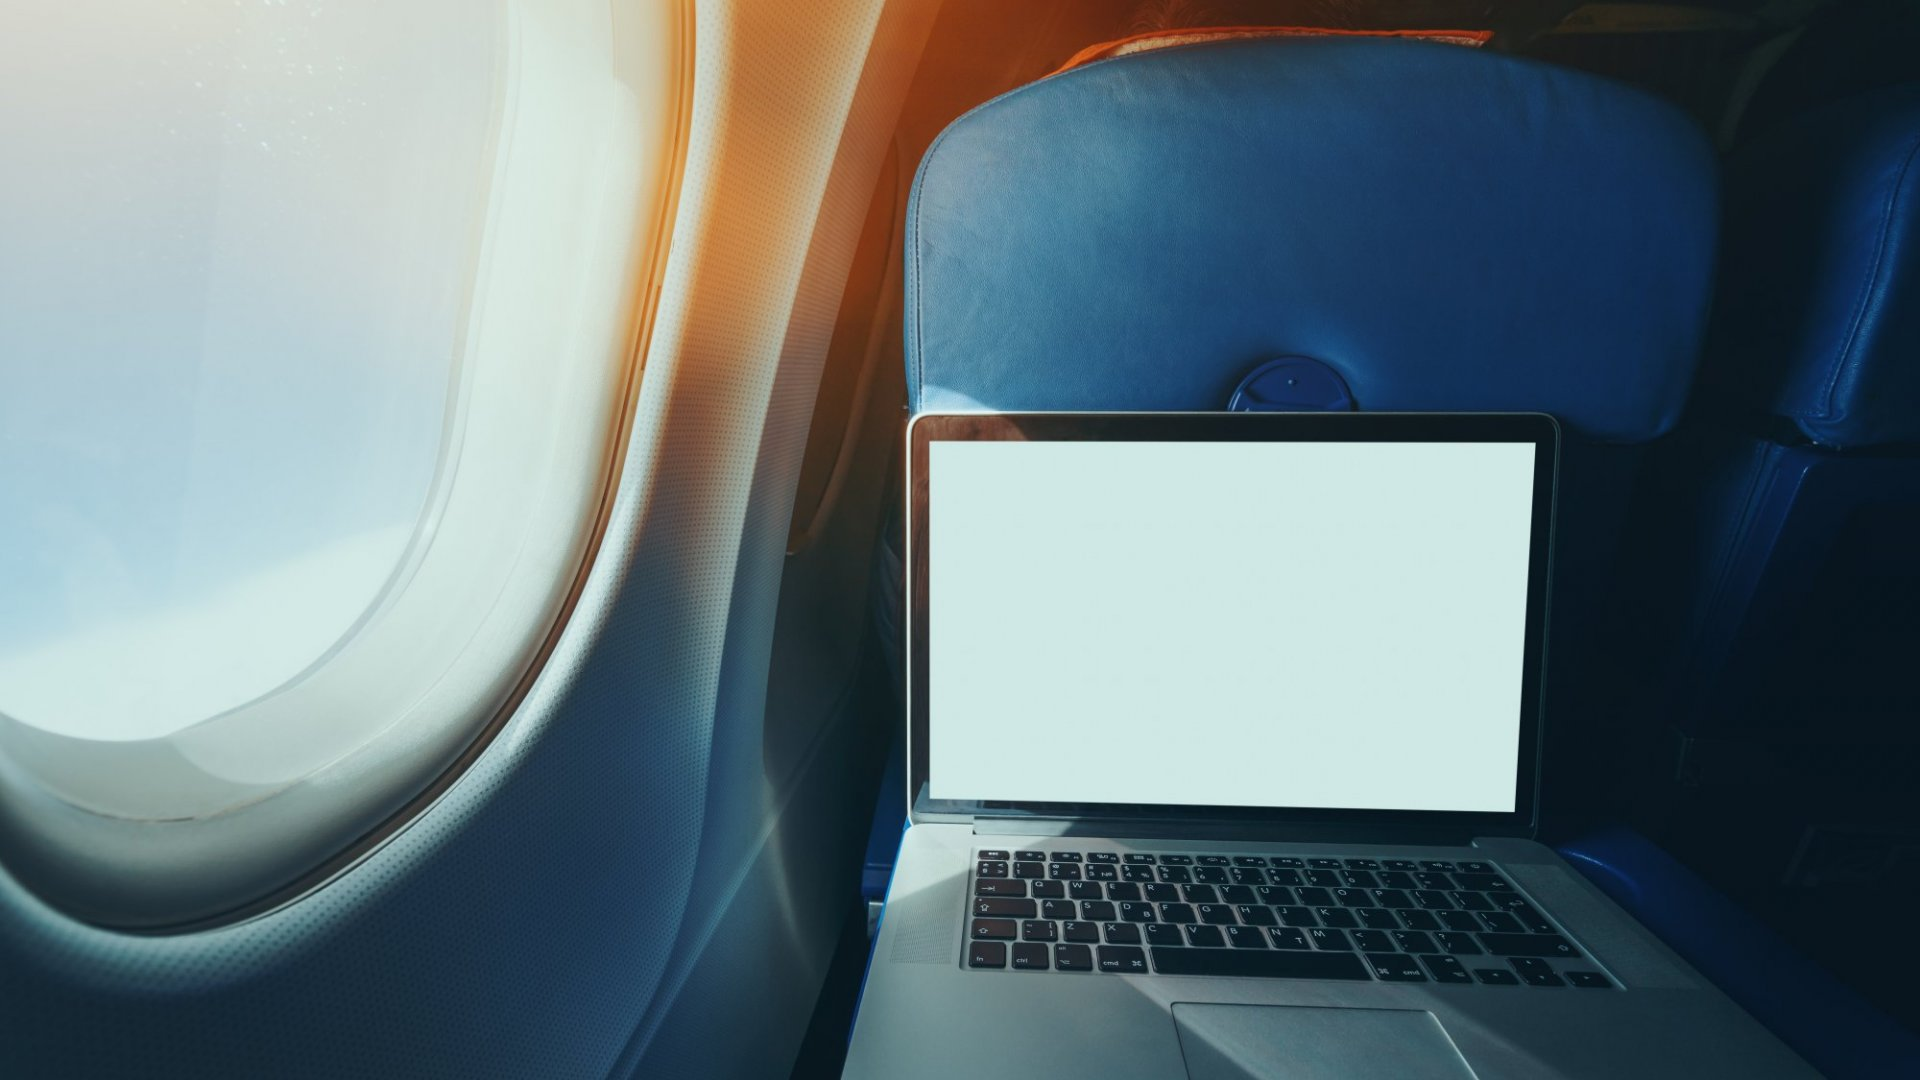 If You Need Solid In-Flight Wi-Fi, Choose One of These 4 Airlines